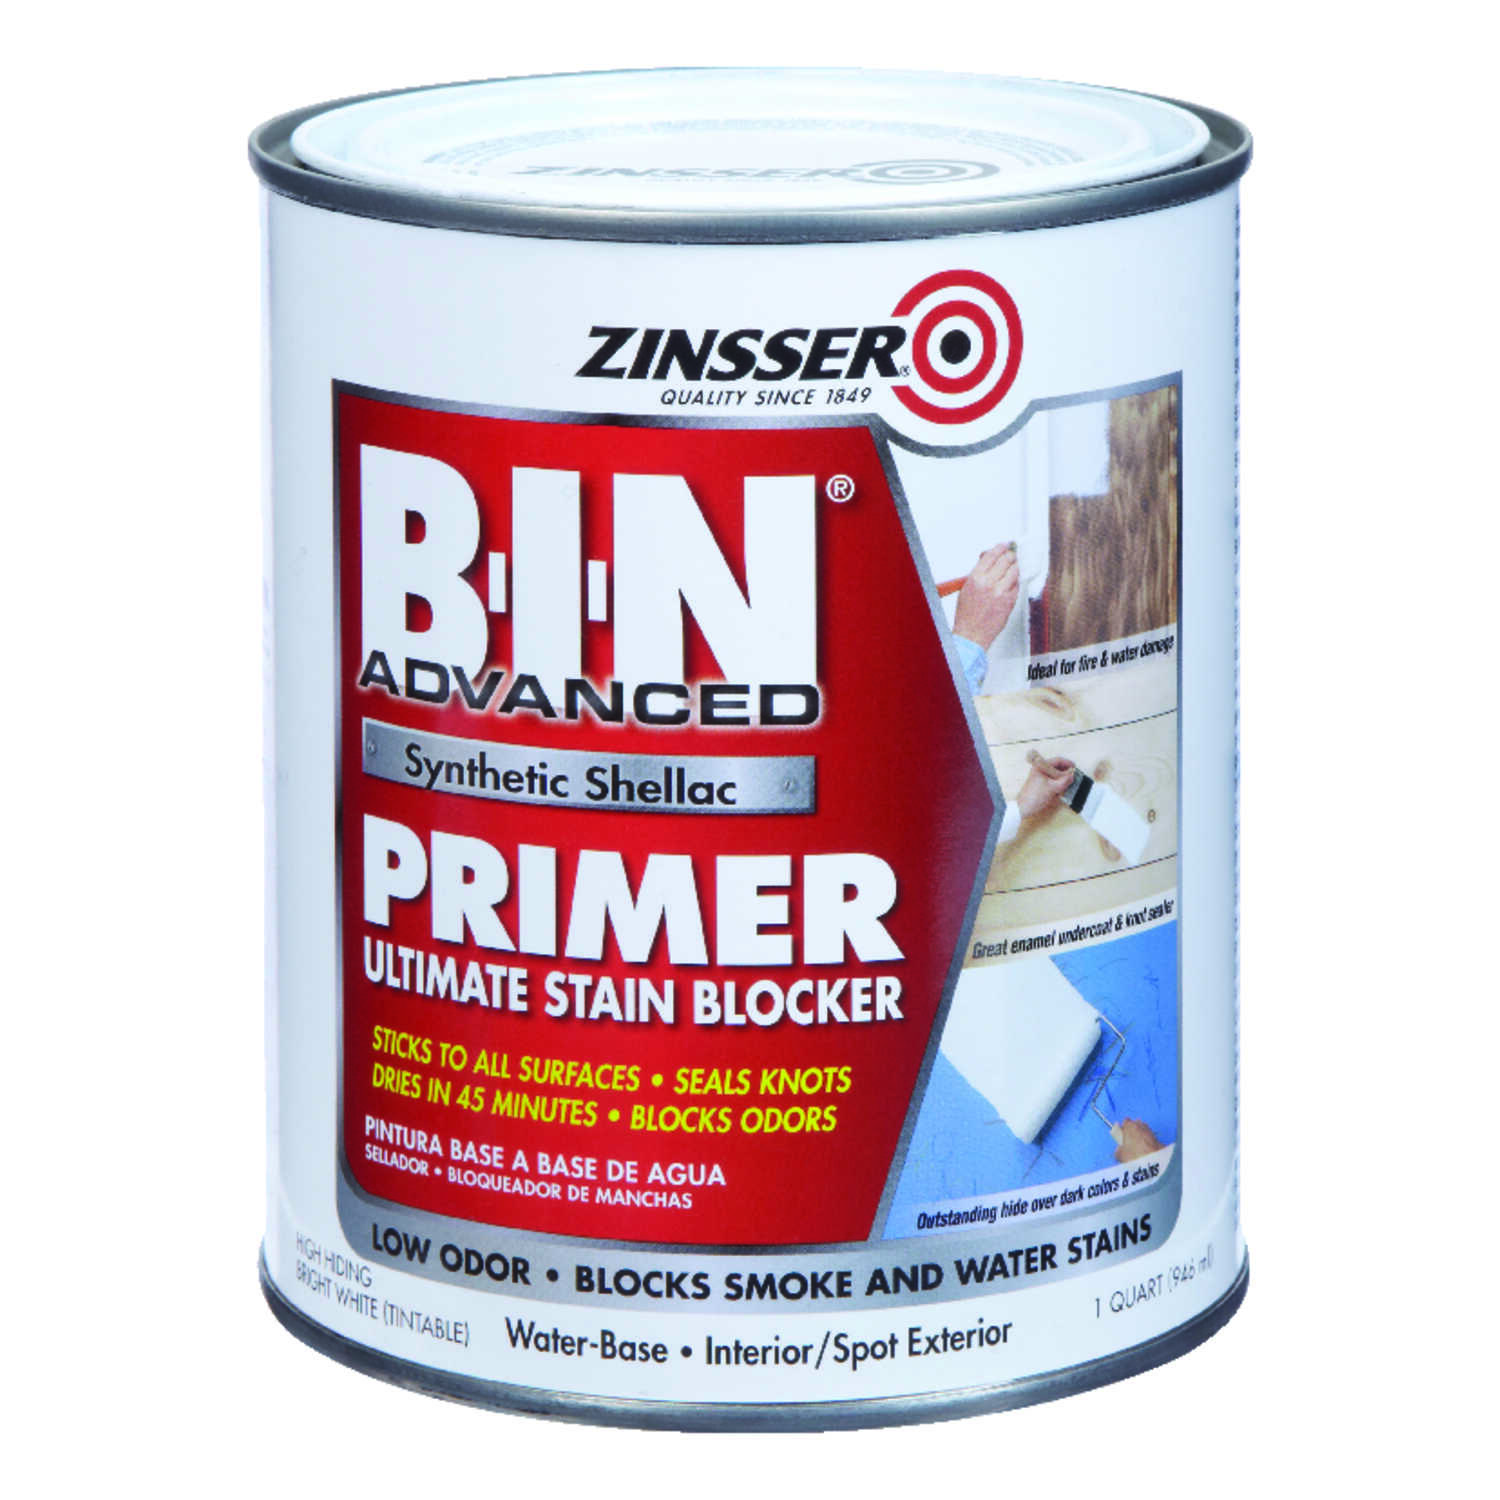 Zinsser Bin Advanced White Primer And Sealer For All Surfaces 1 Qt